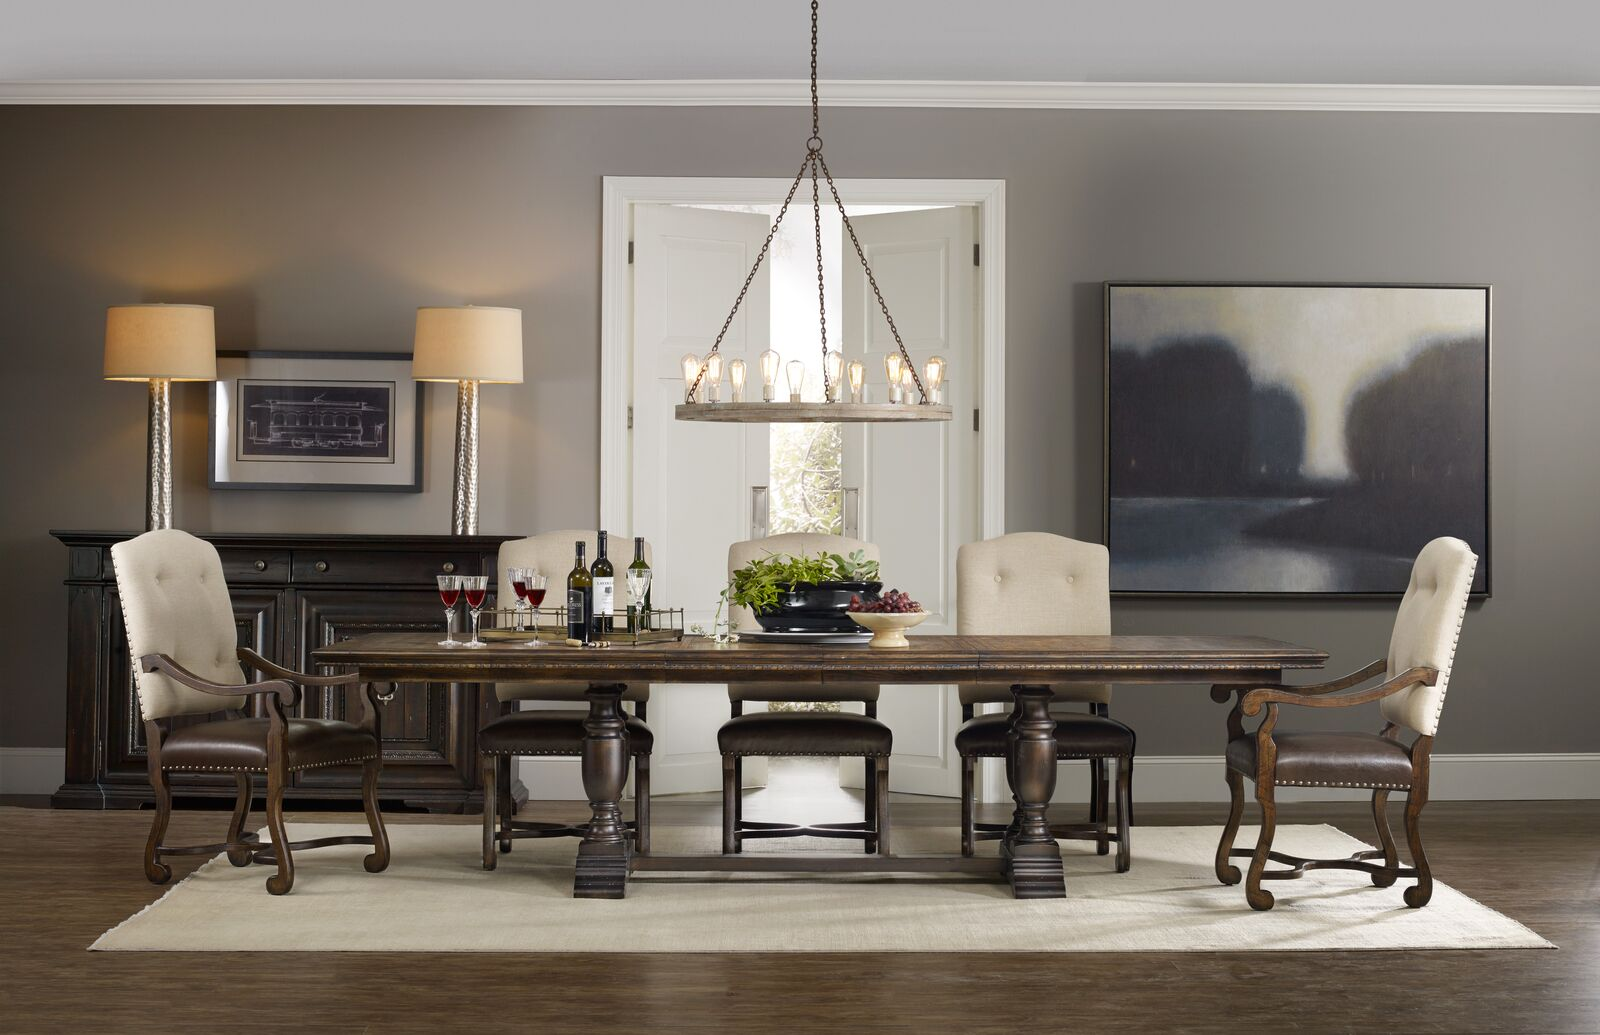 Itu0027s Important That You Choose A Style That Not Only Meets Your Needs Now,  But Will Also Grow With You In The Future. We Love This Dining Room Set  From ...